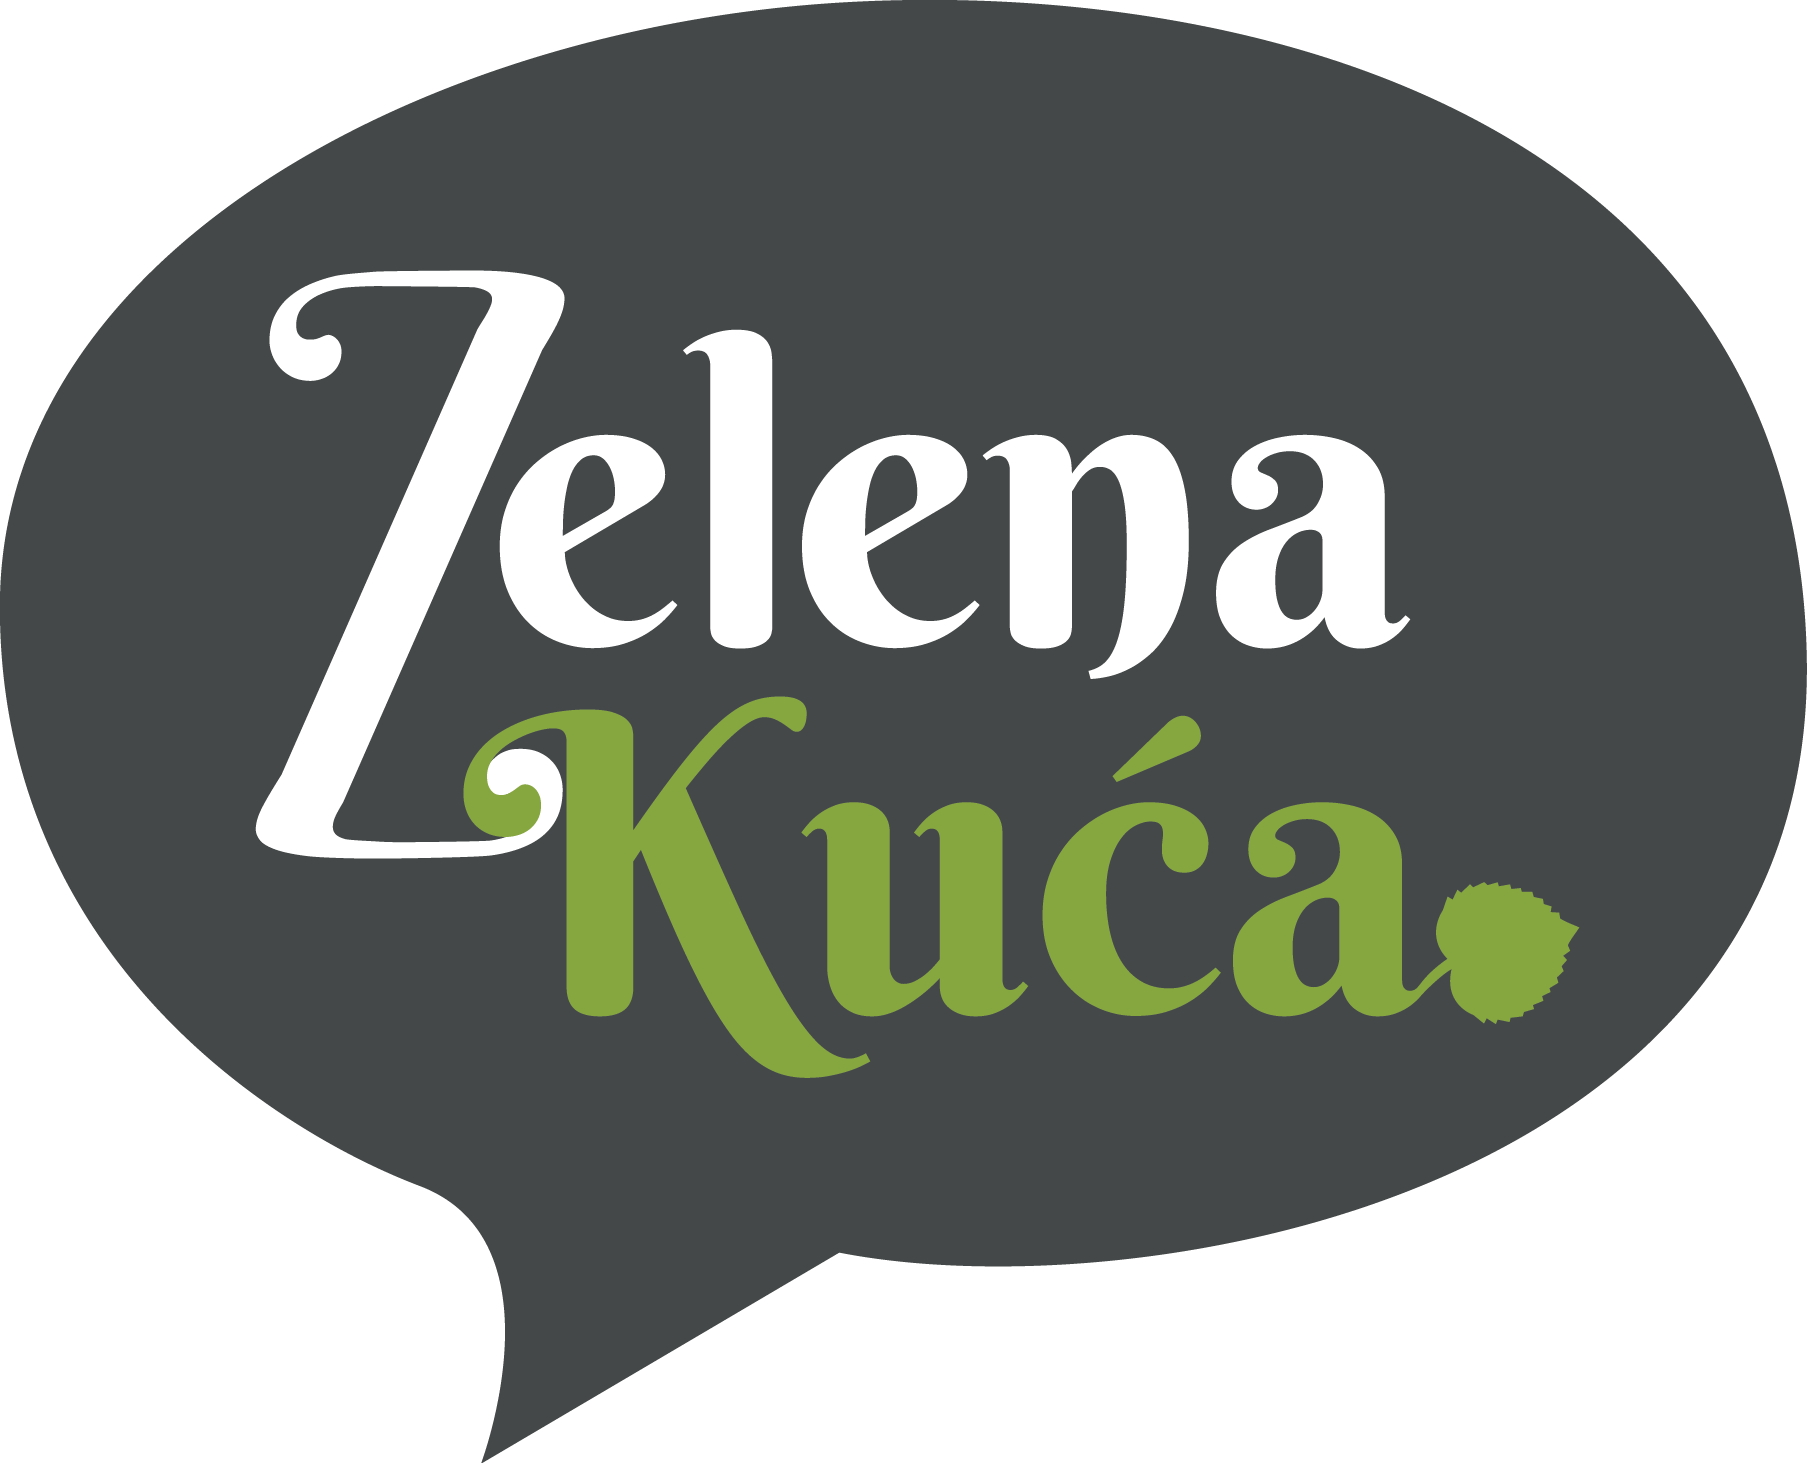 Zelena kuća